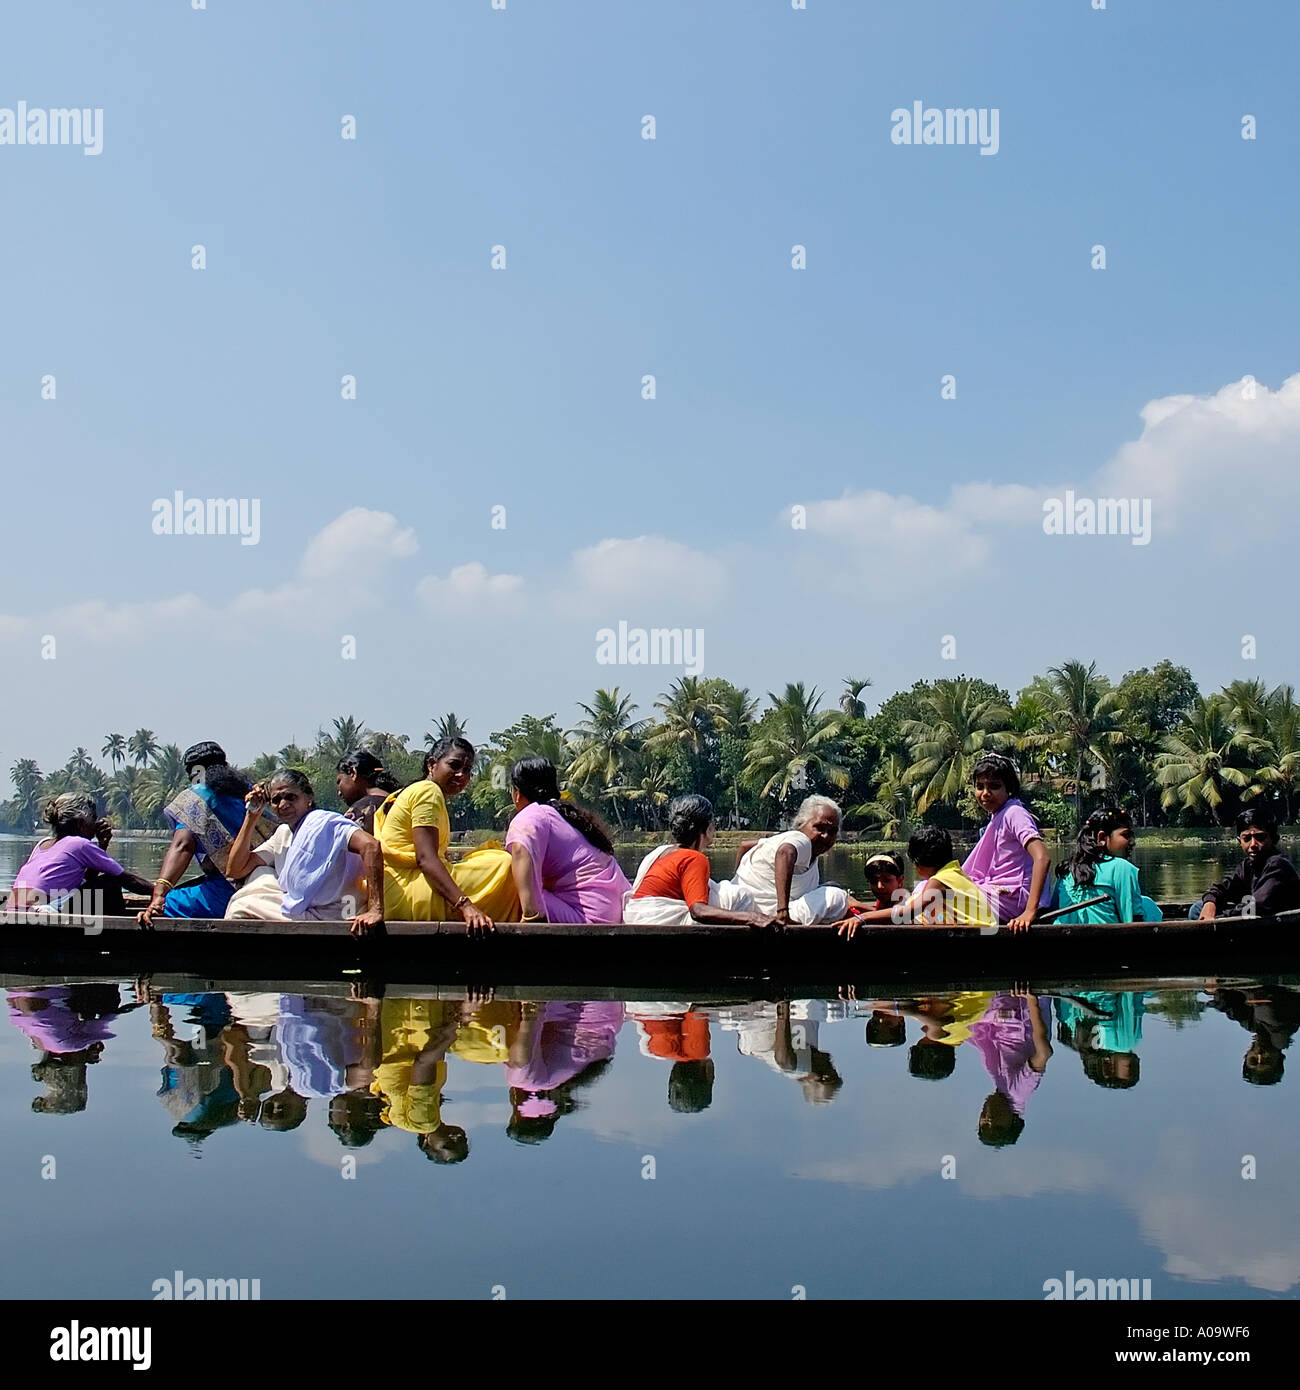 Women and children in a taxi canoe on the backwaters of kerala South India Stock Photo